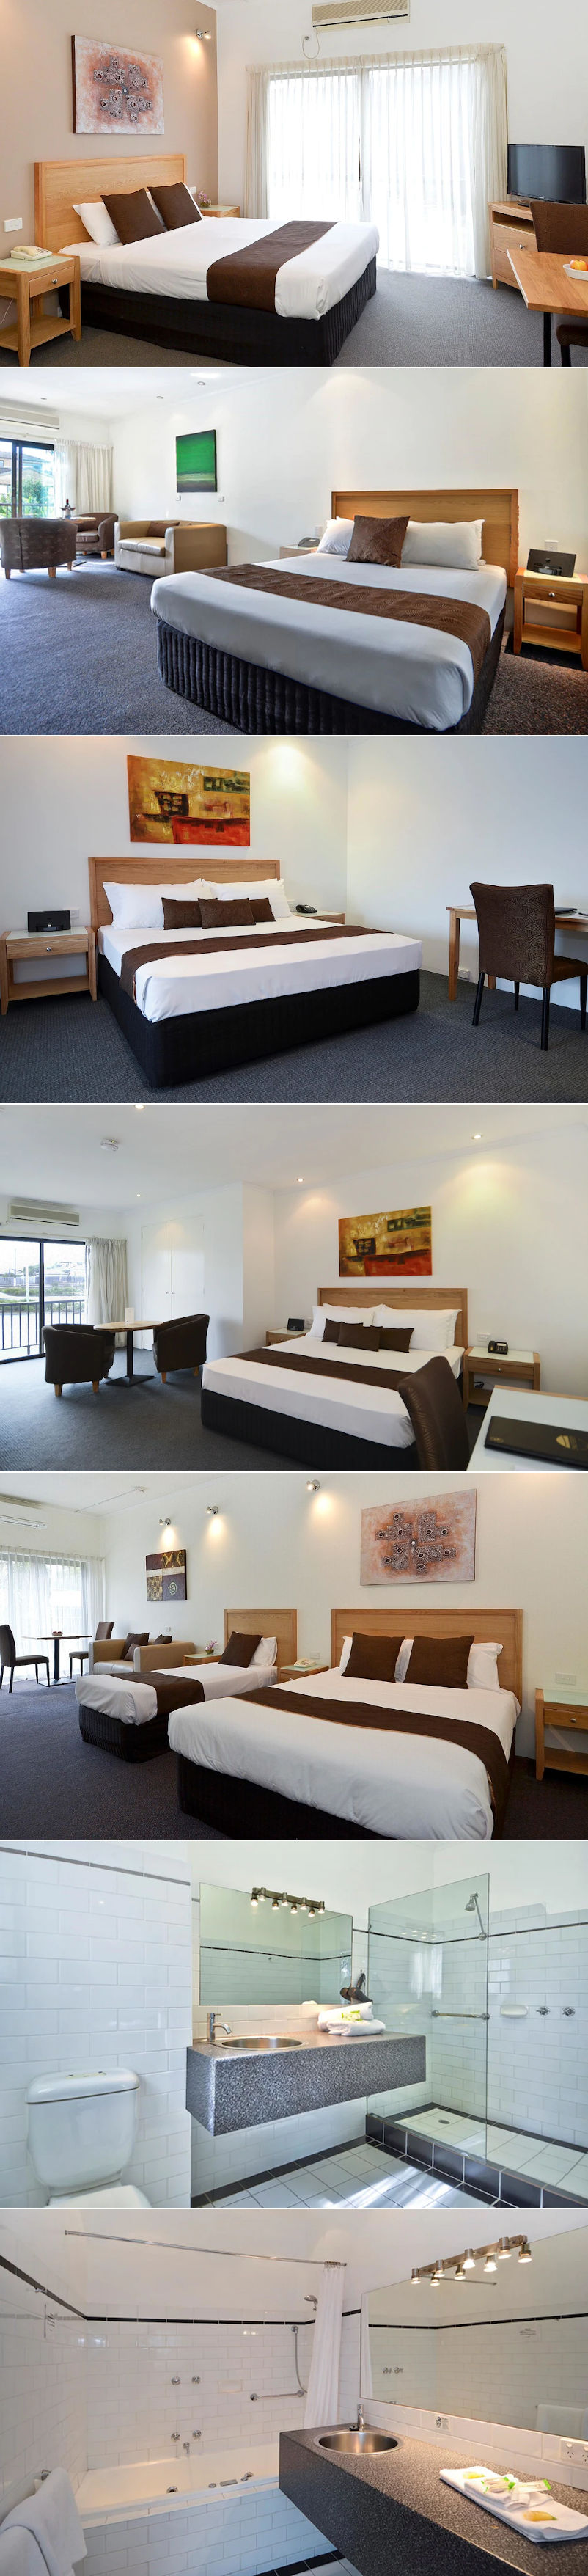 Geelong Motor Inn & Serviced Apartments - Motel rooms